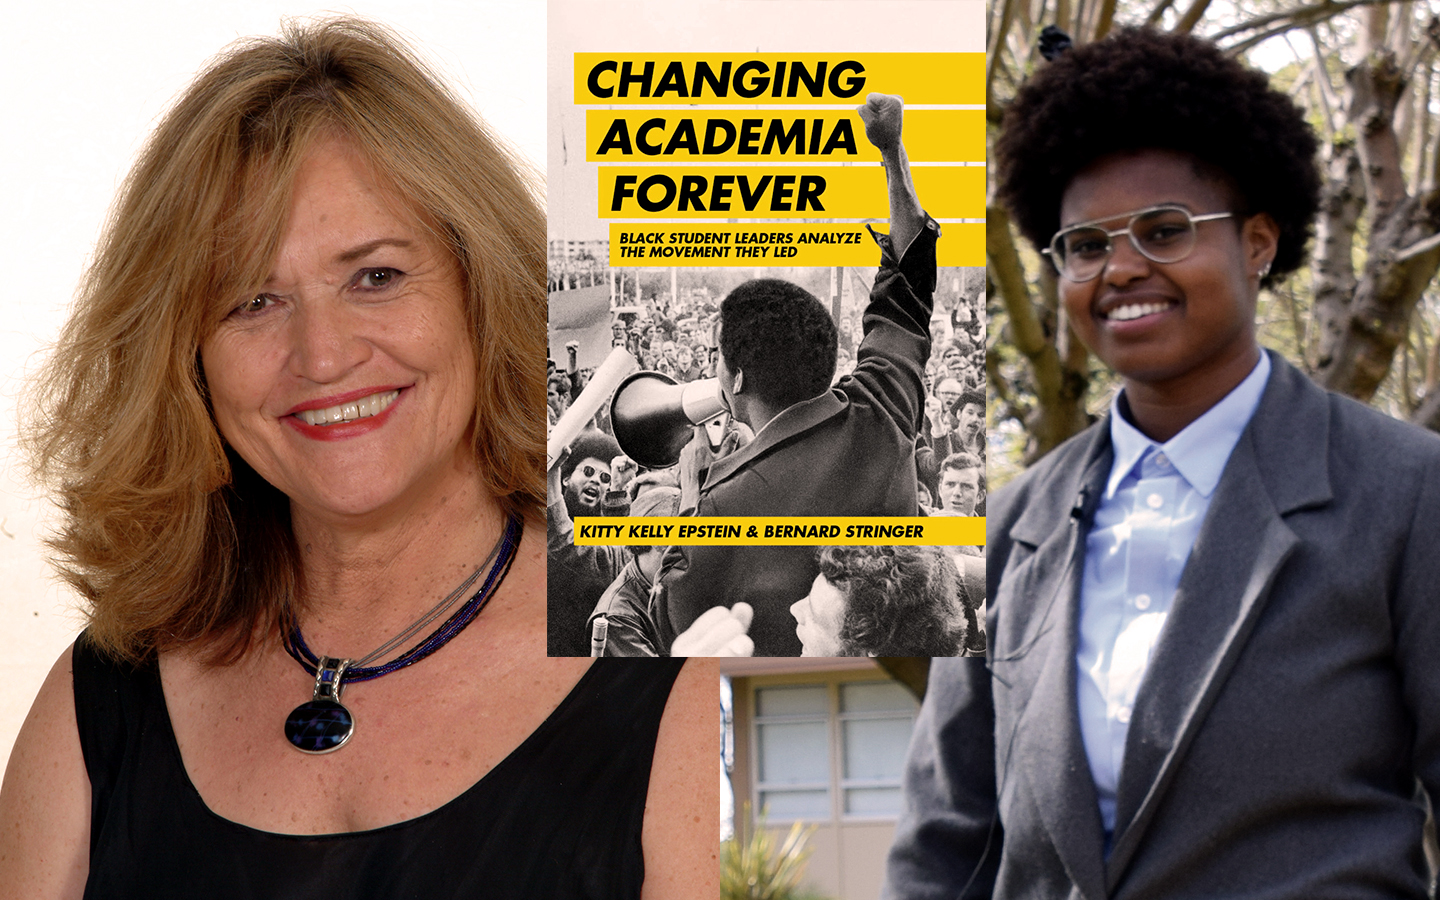 Kitty Kelly Epstein and Bernard Stringer with Changing Academia Forever interview poster